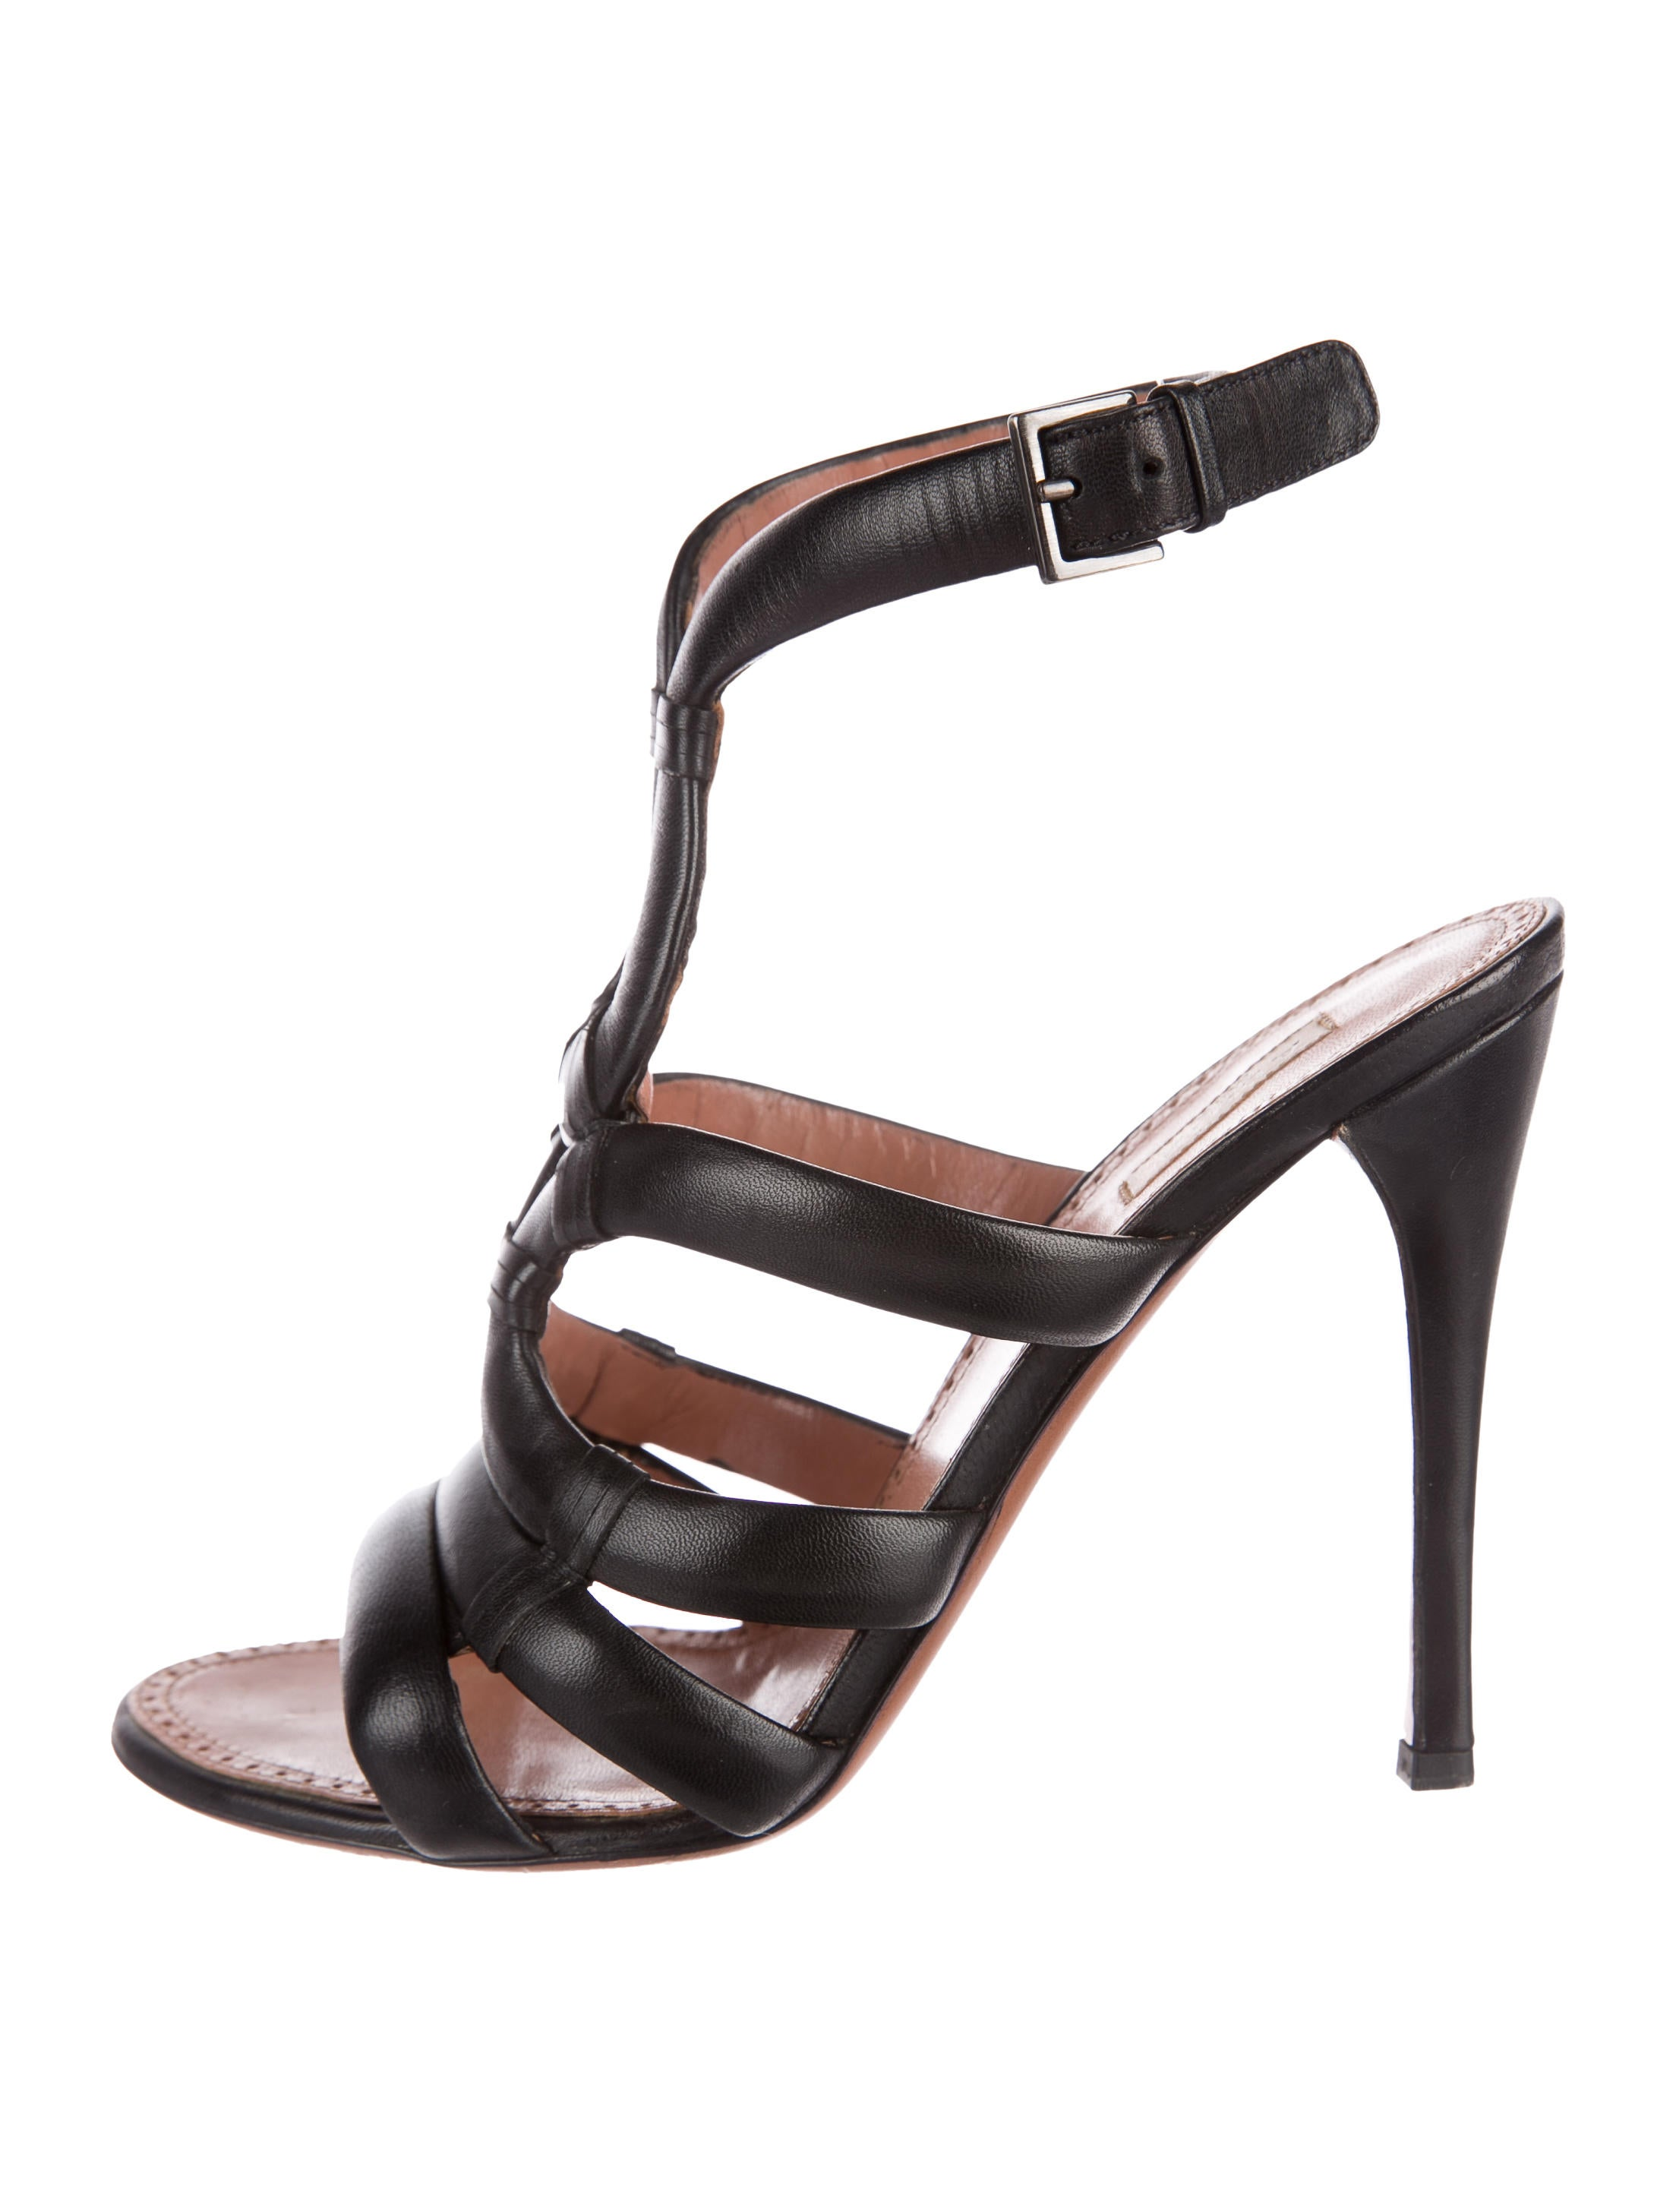 Alaïa Leather Ankle-Strap Sandals cheap affordable cheap price outlet sale 5Cd6s2EGht